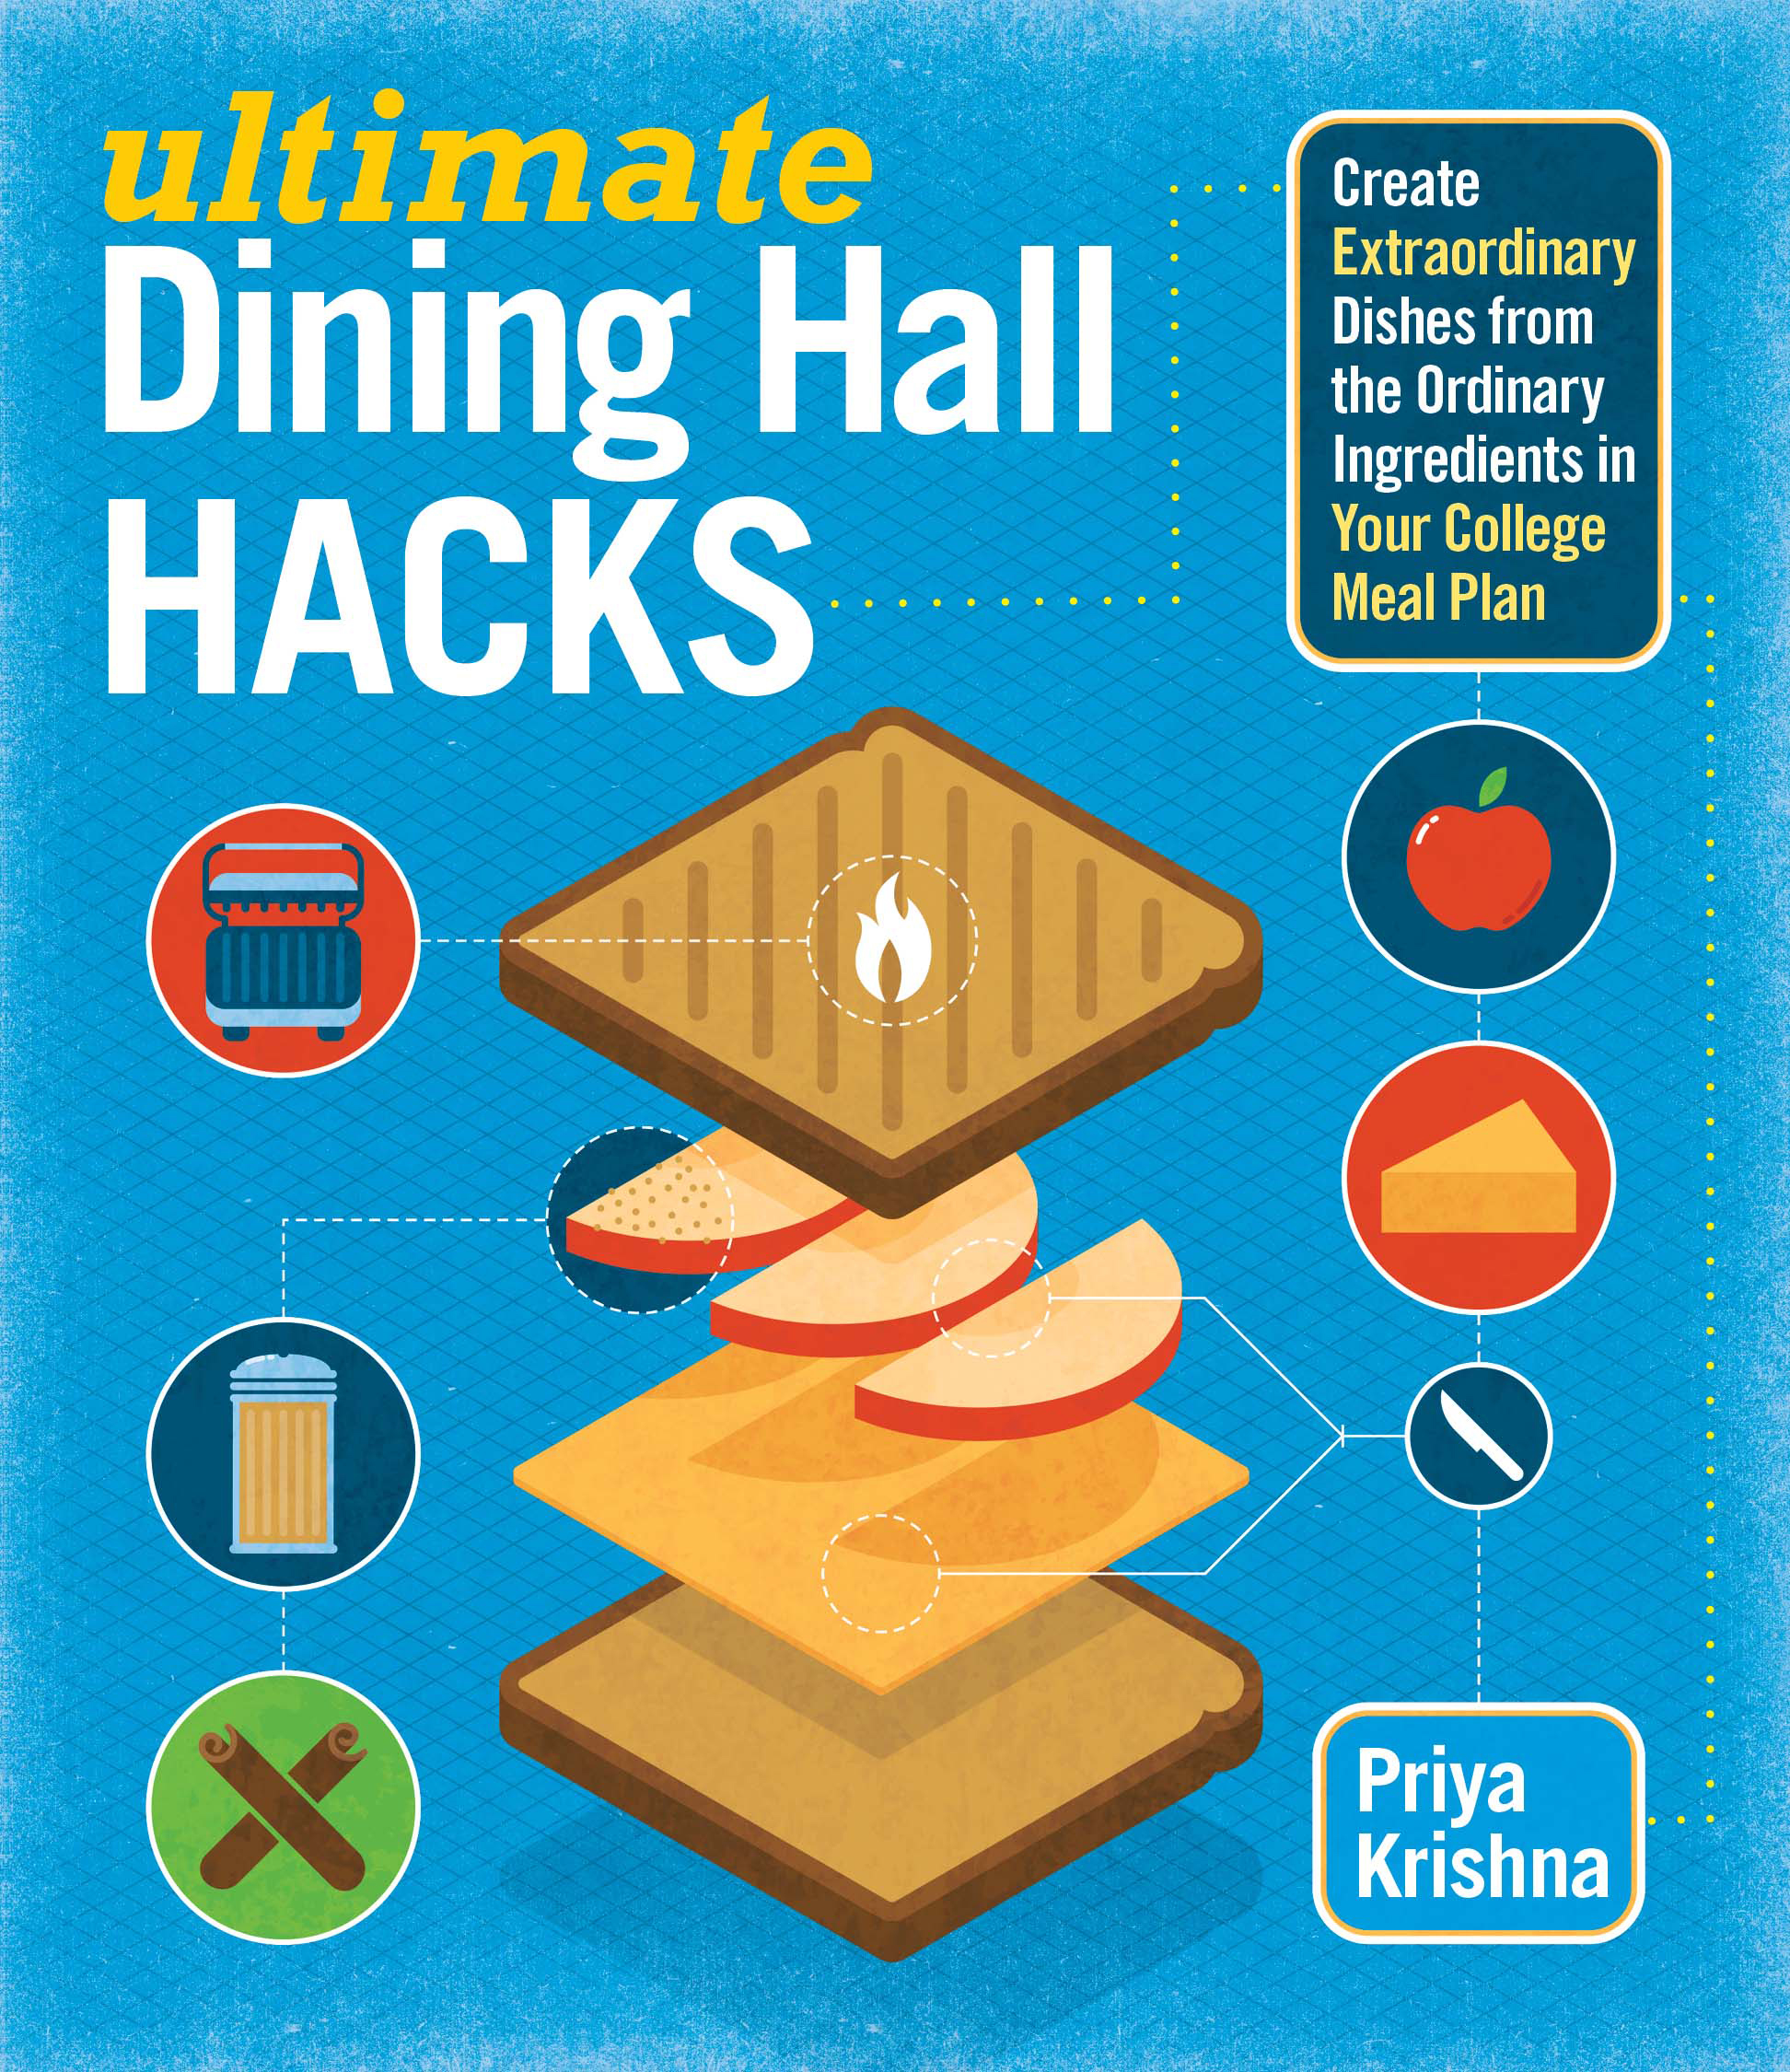 Ultimate Dining Hall Hacks Create Extraordinary Dishes from the Ordinary Ingredients in Your College Meal Plan - Priya Krishna